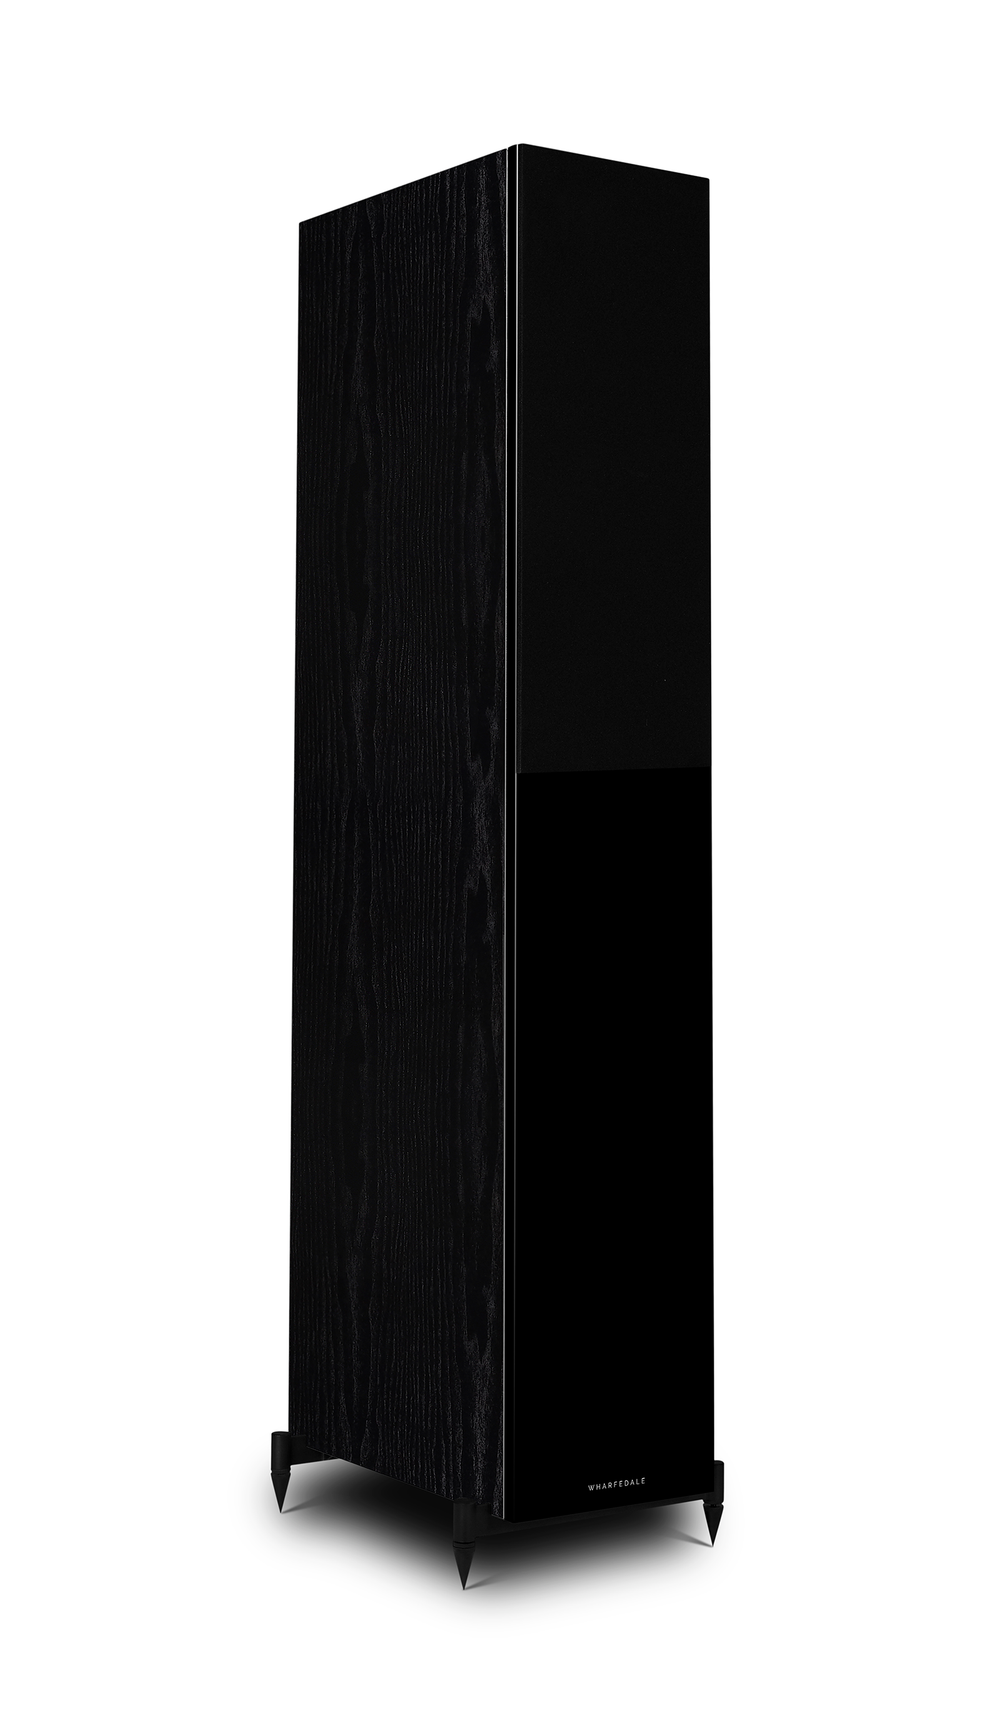 Diamond 12.4 Floorstanding Speakers (Pair)